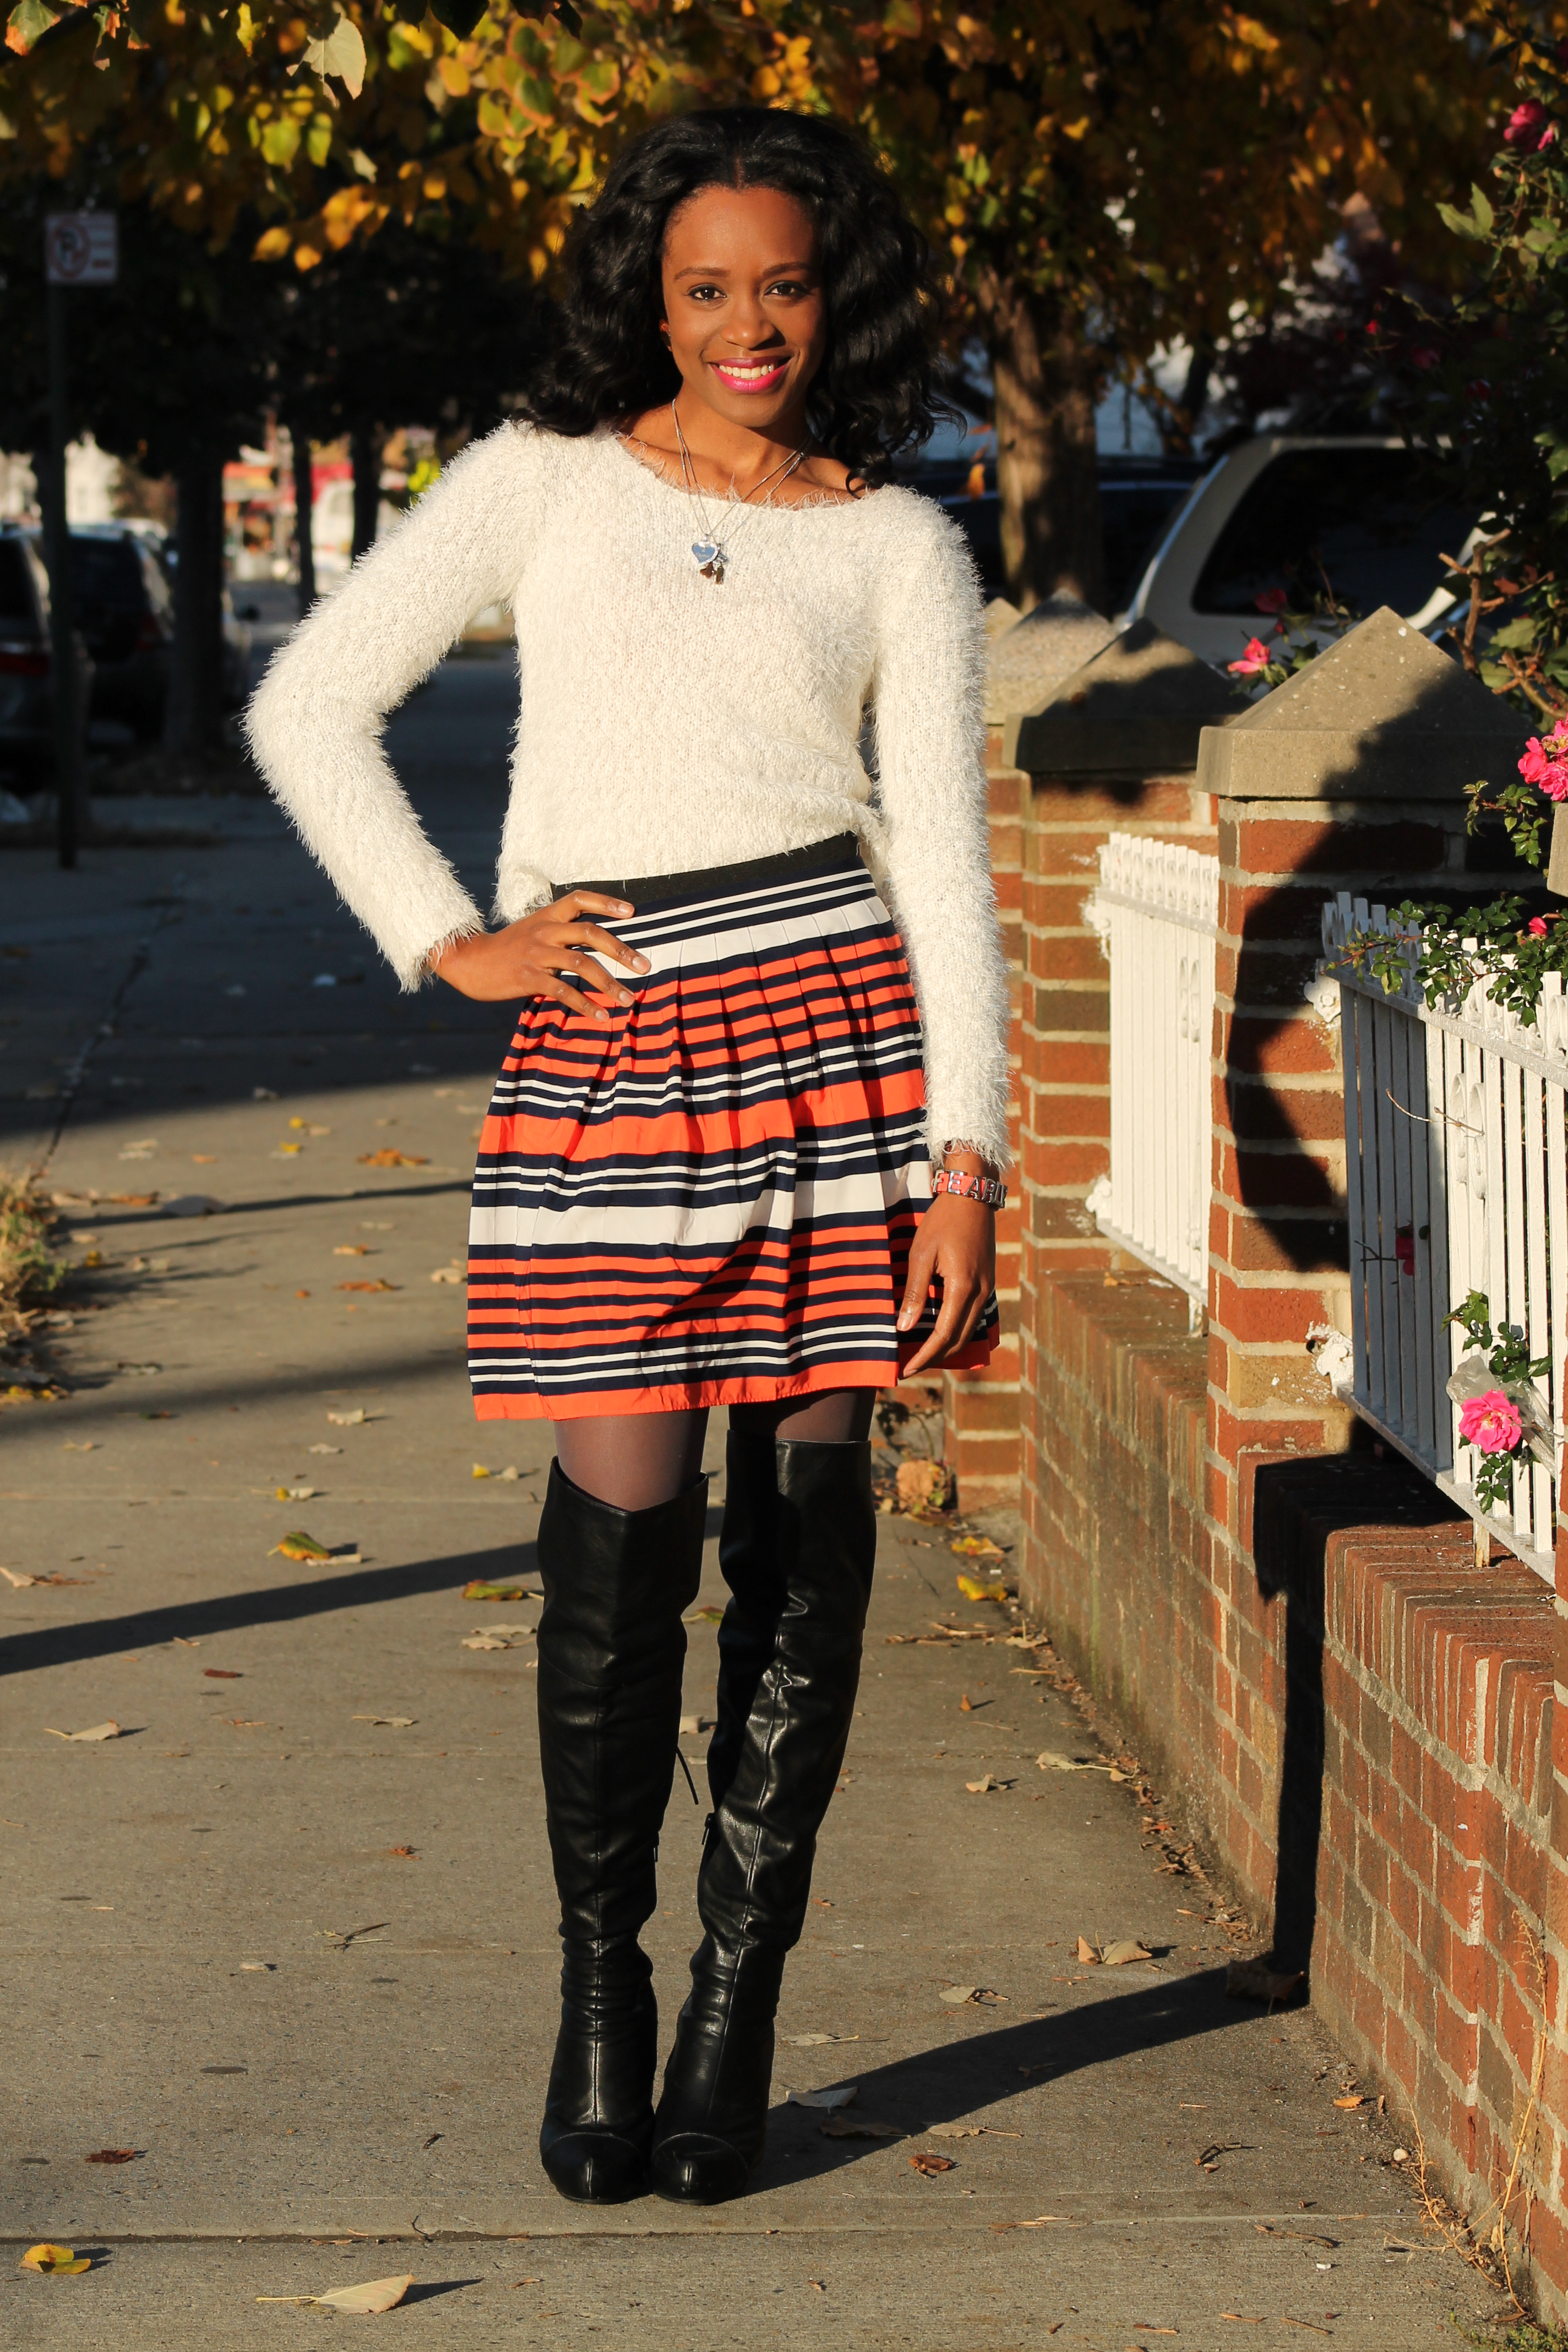 Striped skirt + over the knee boots + fluffy sweater (7)